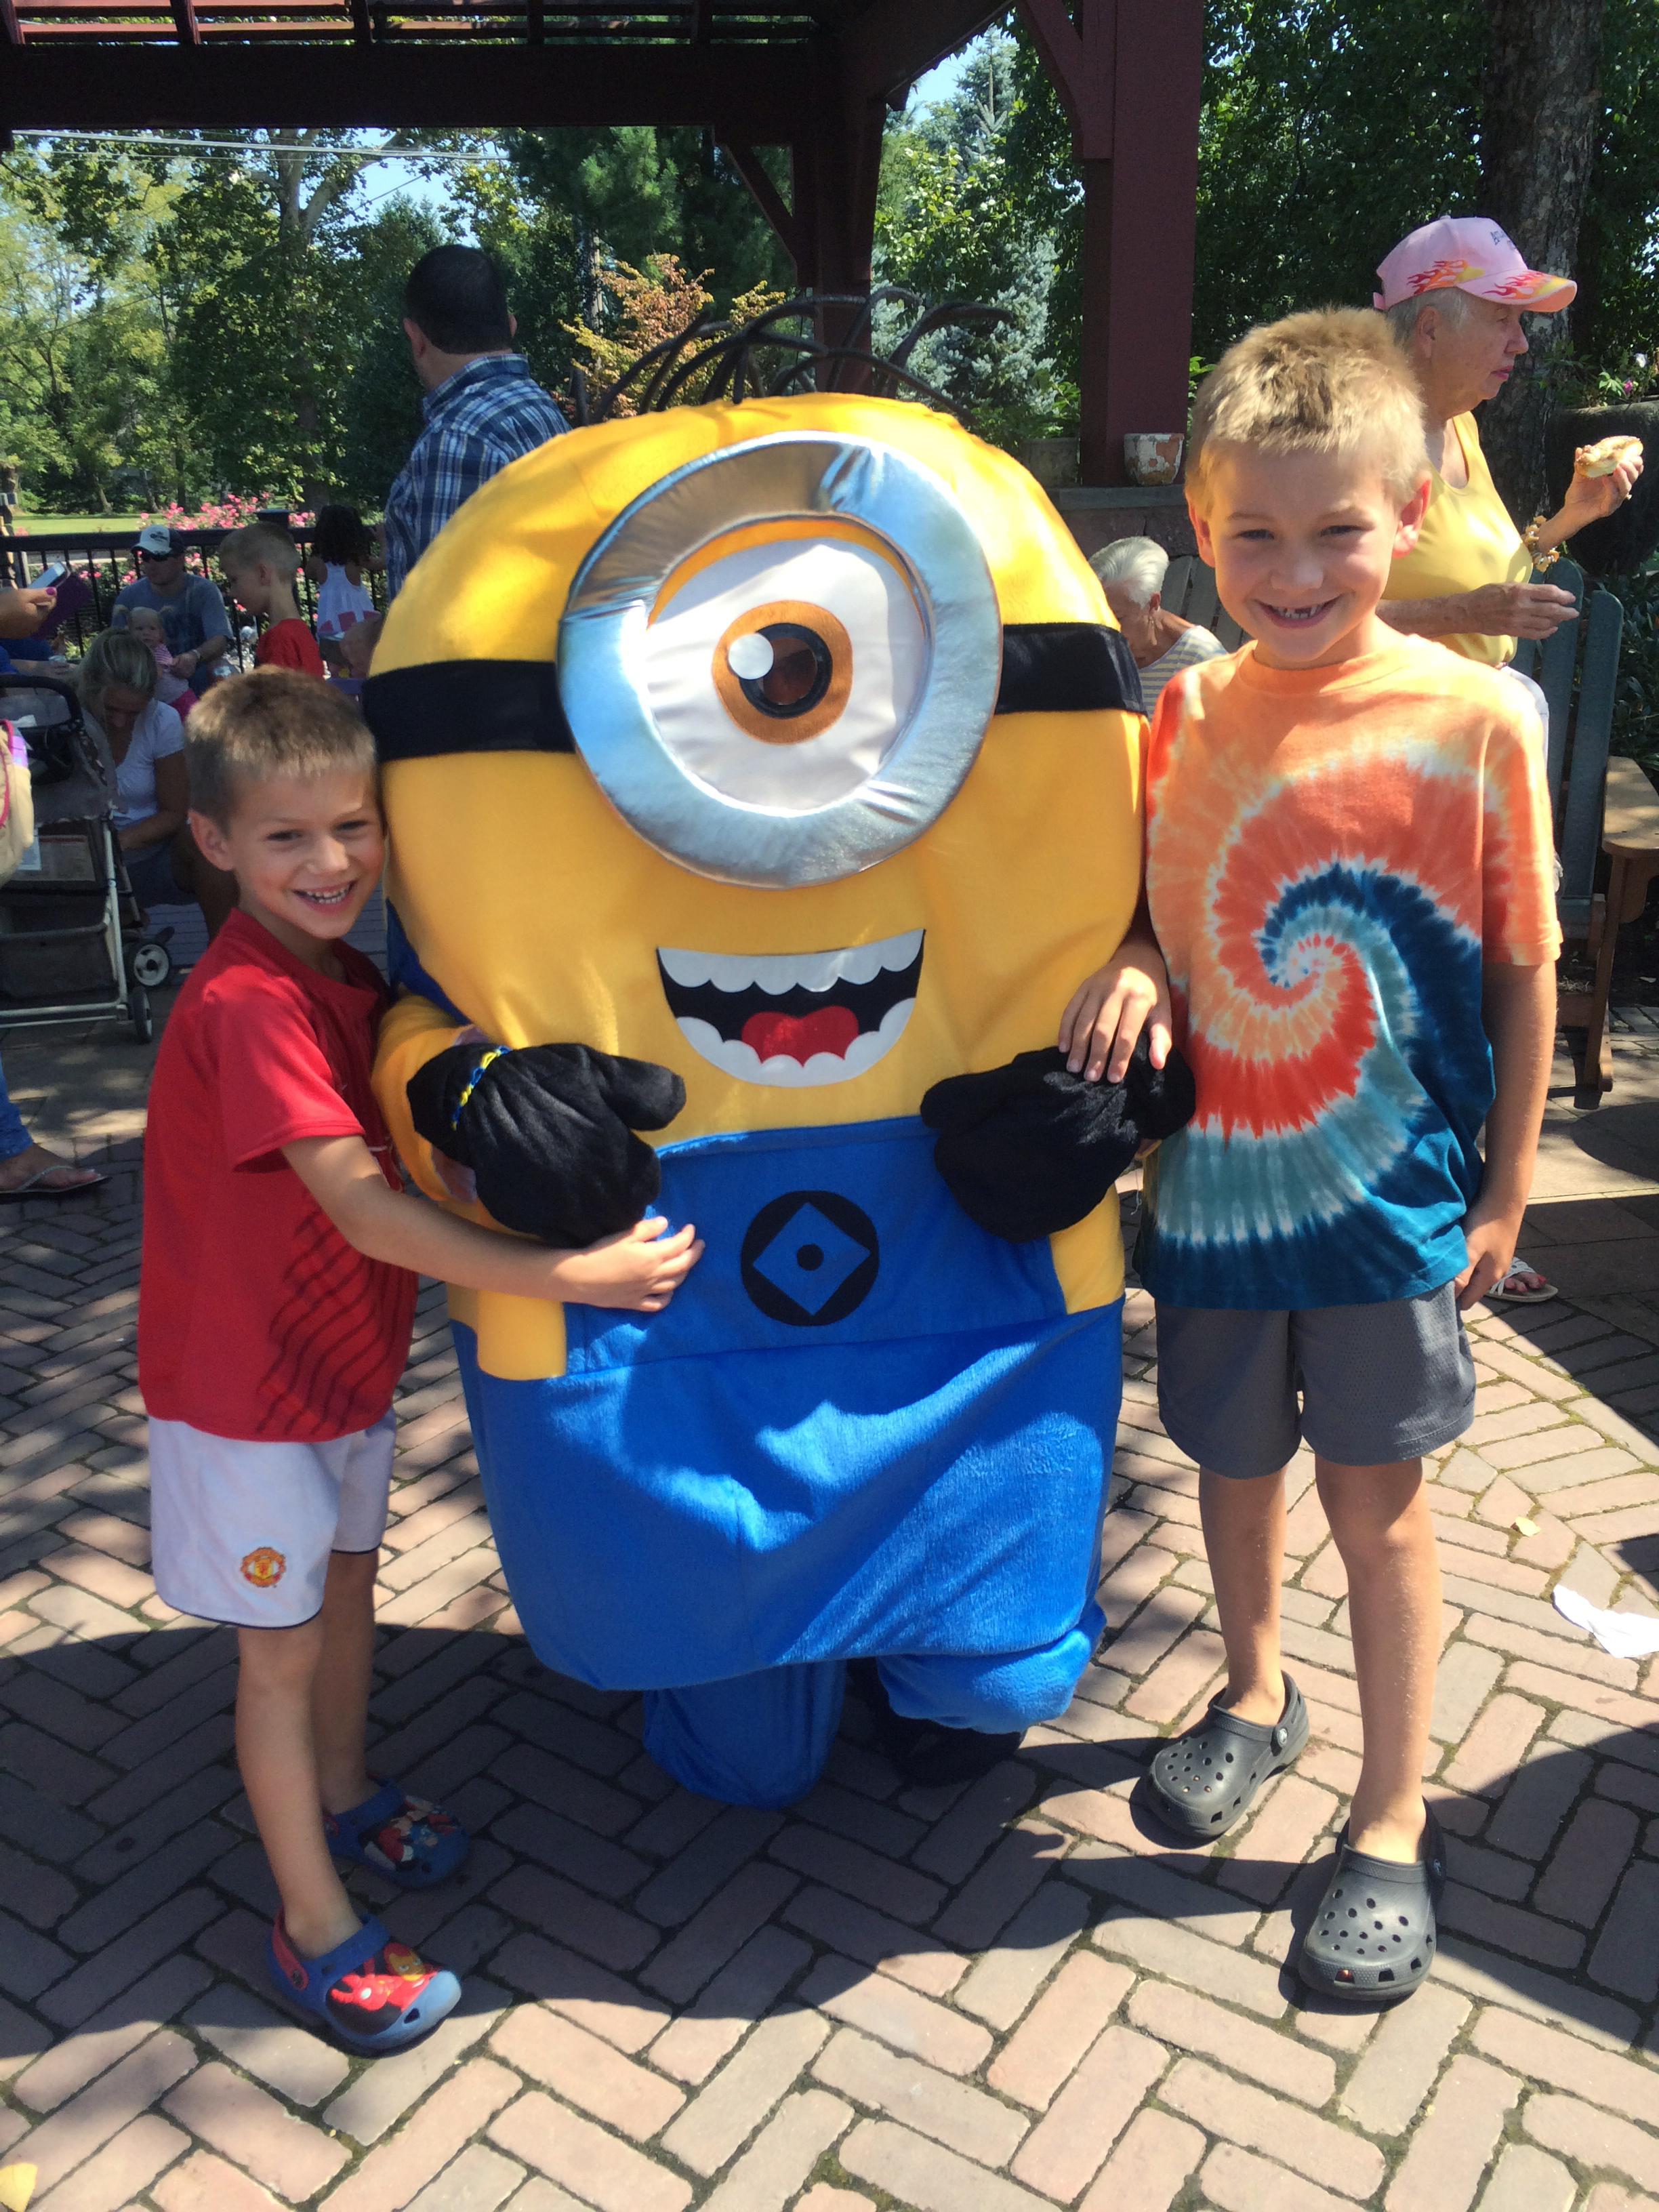 Labor Day Bbq With Minion From Despicable Me